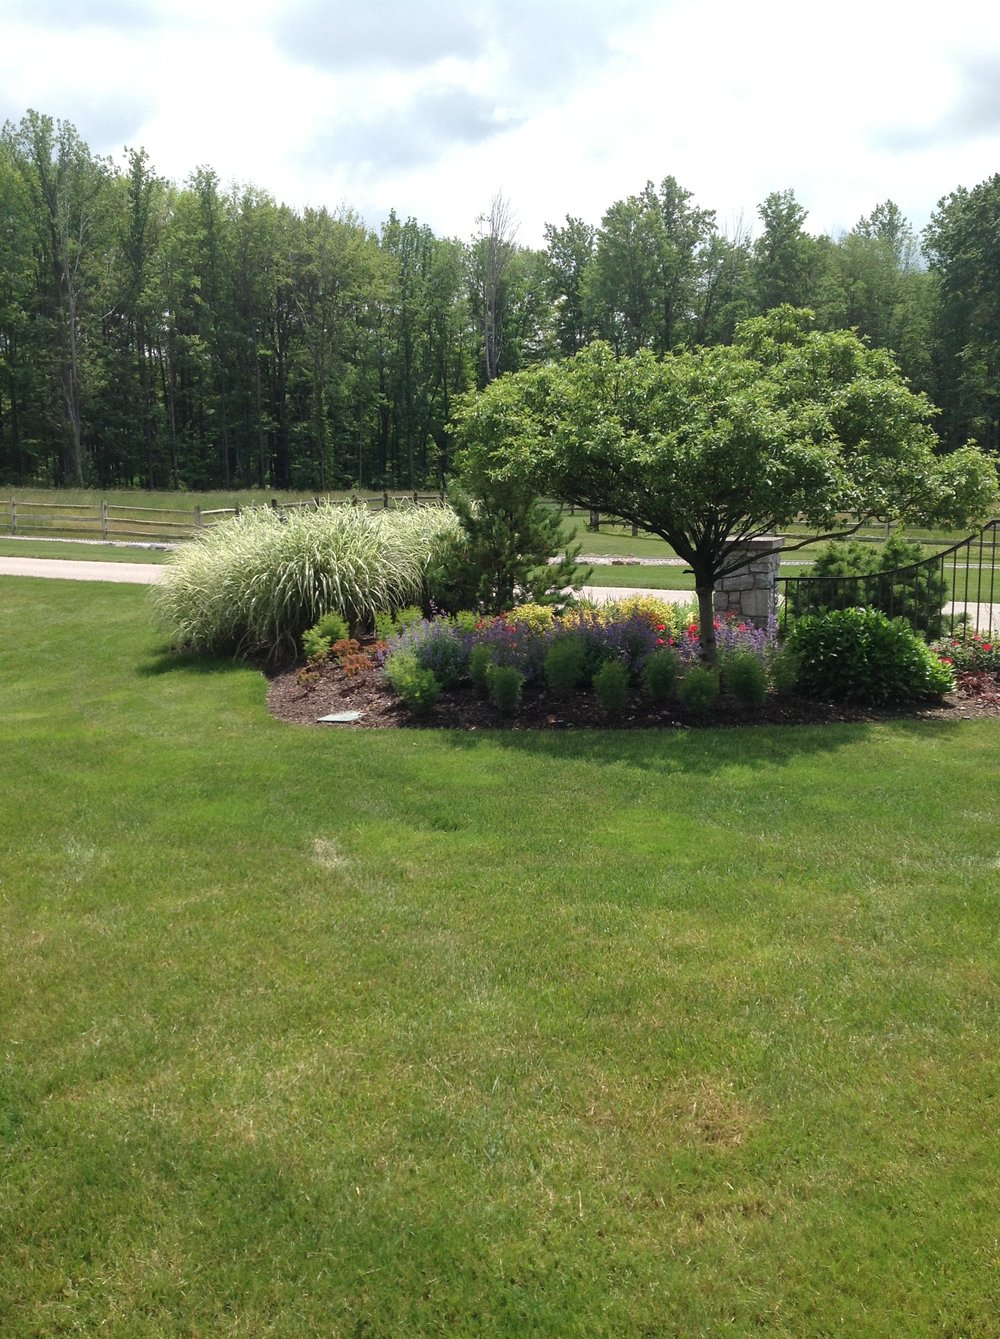 Landscaping companies with top lawn care and landscape design in Hunting Valley and Chagrin Falls, OH.